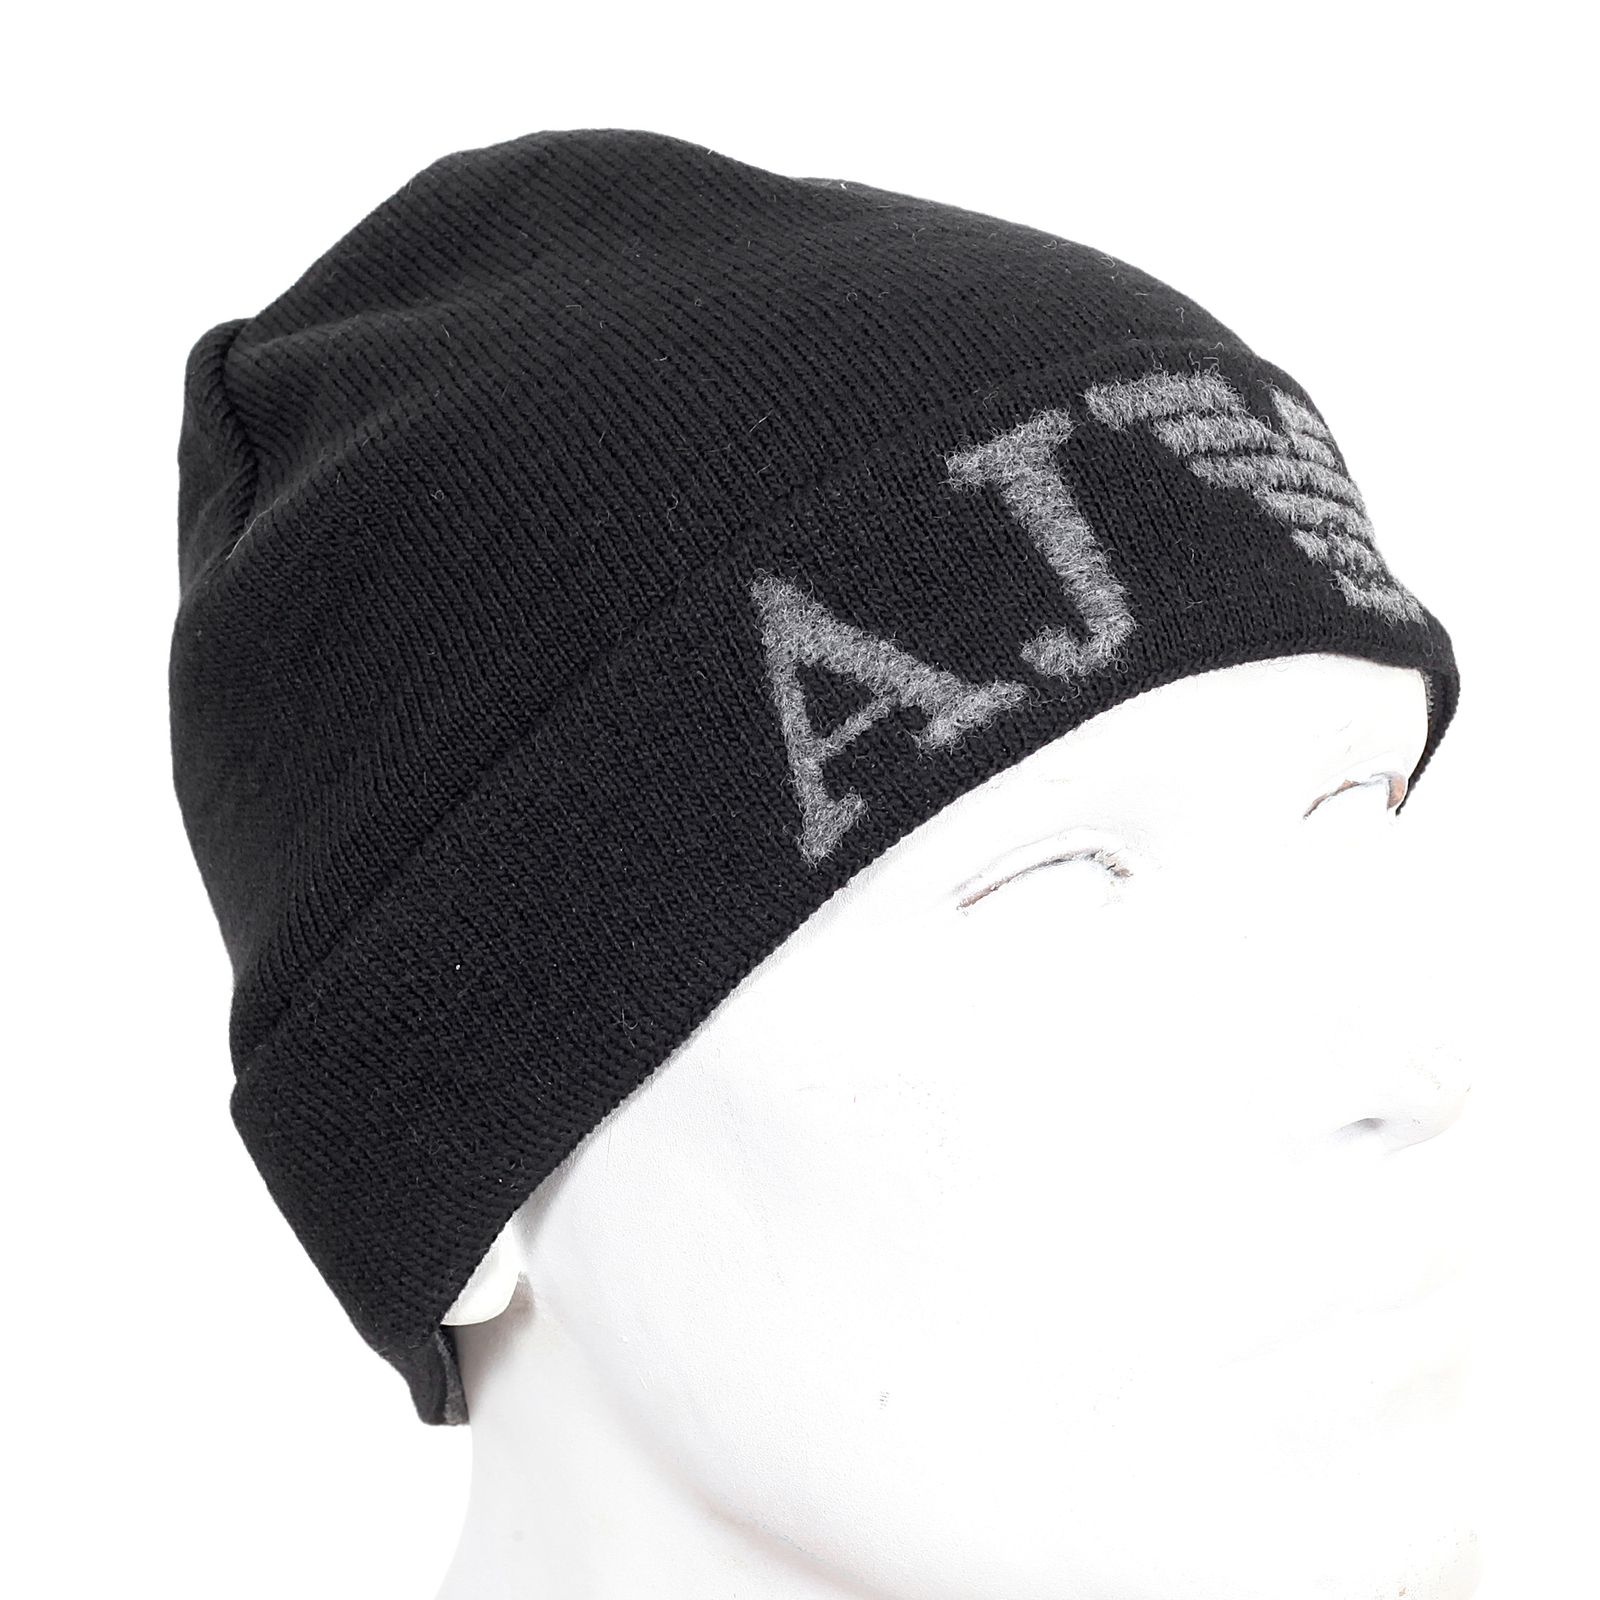 Armani mens black fine rib knit Z6401 M2 beanie hat AJM4045 at Togged  Clothing 5524a0c2c87